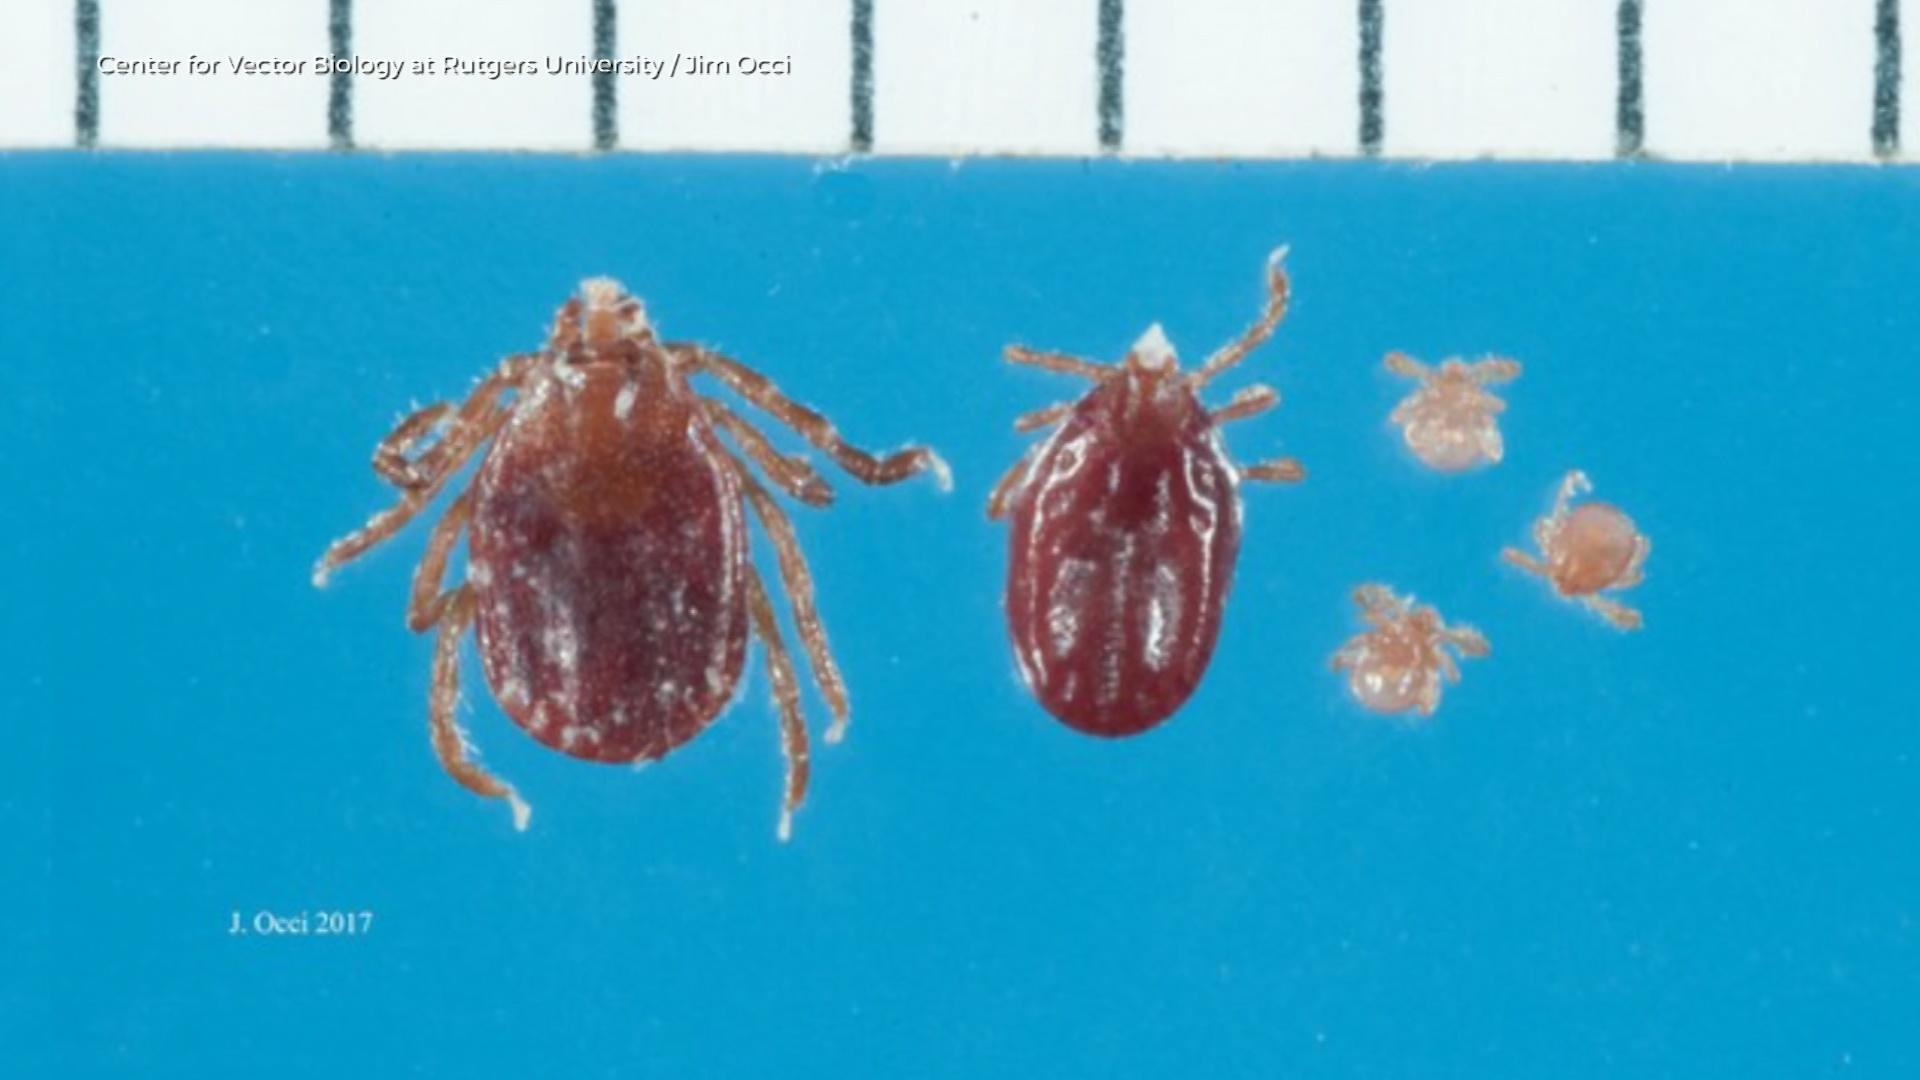 Uptick of Lyme Disease Video